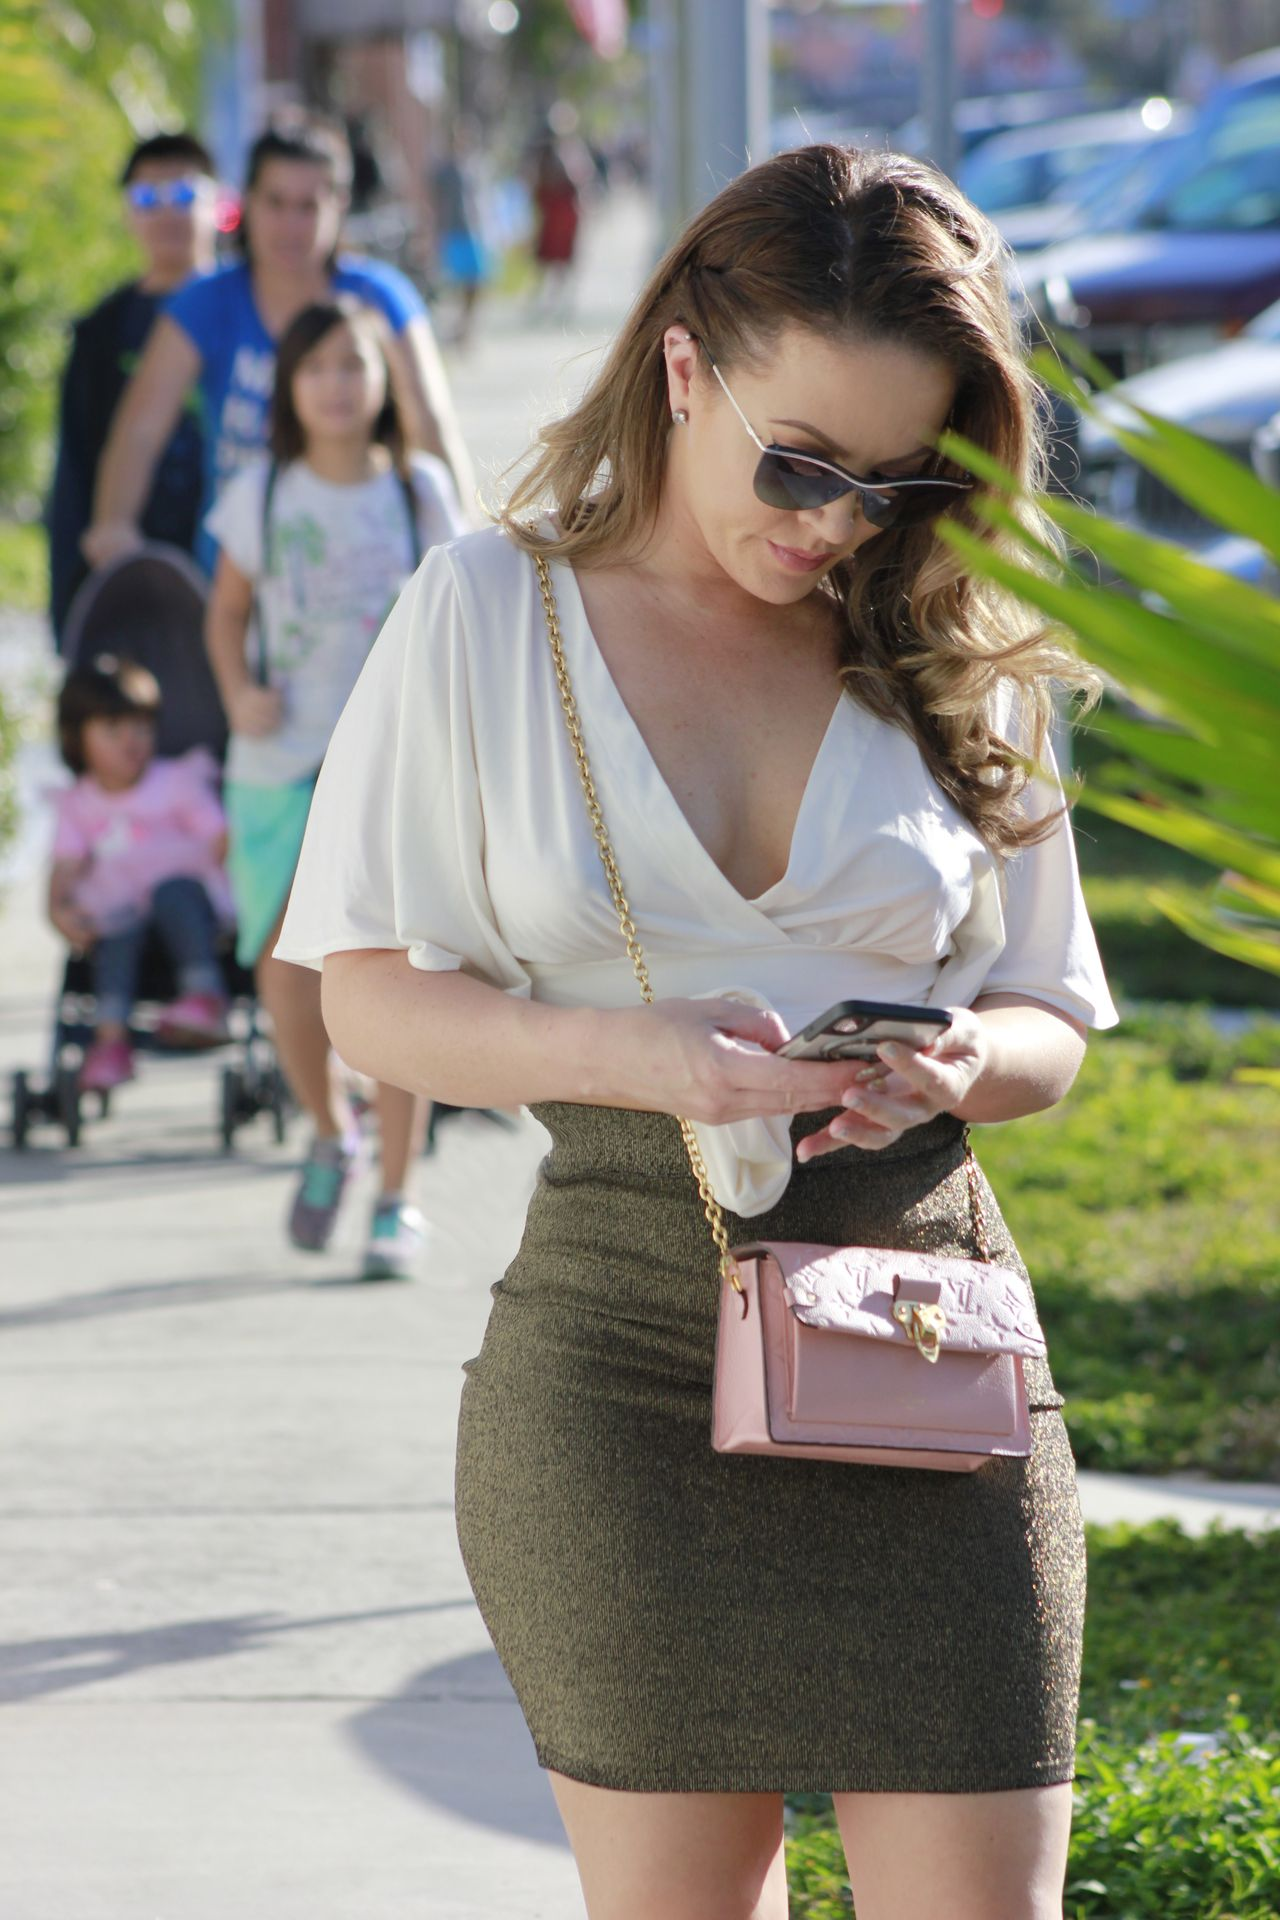 Carmen Valentina Barely Contains Her Curves Out And About In La 0008